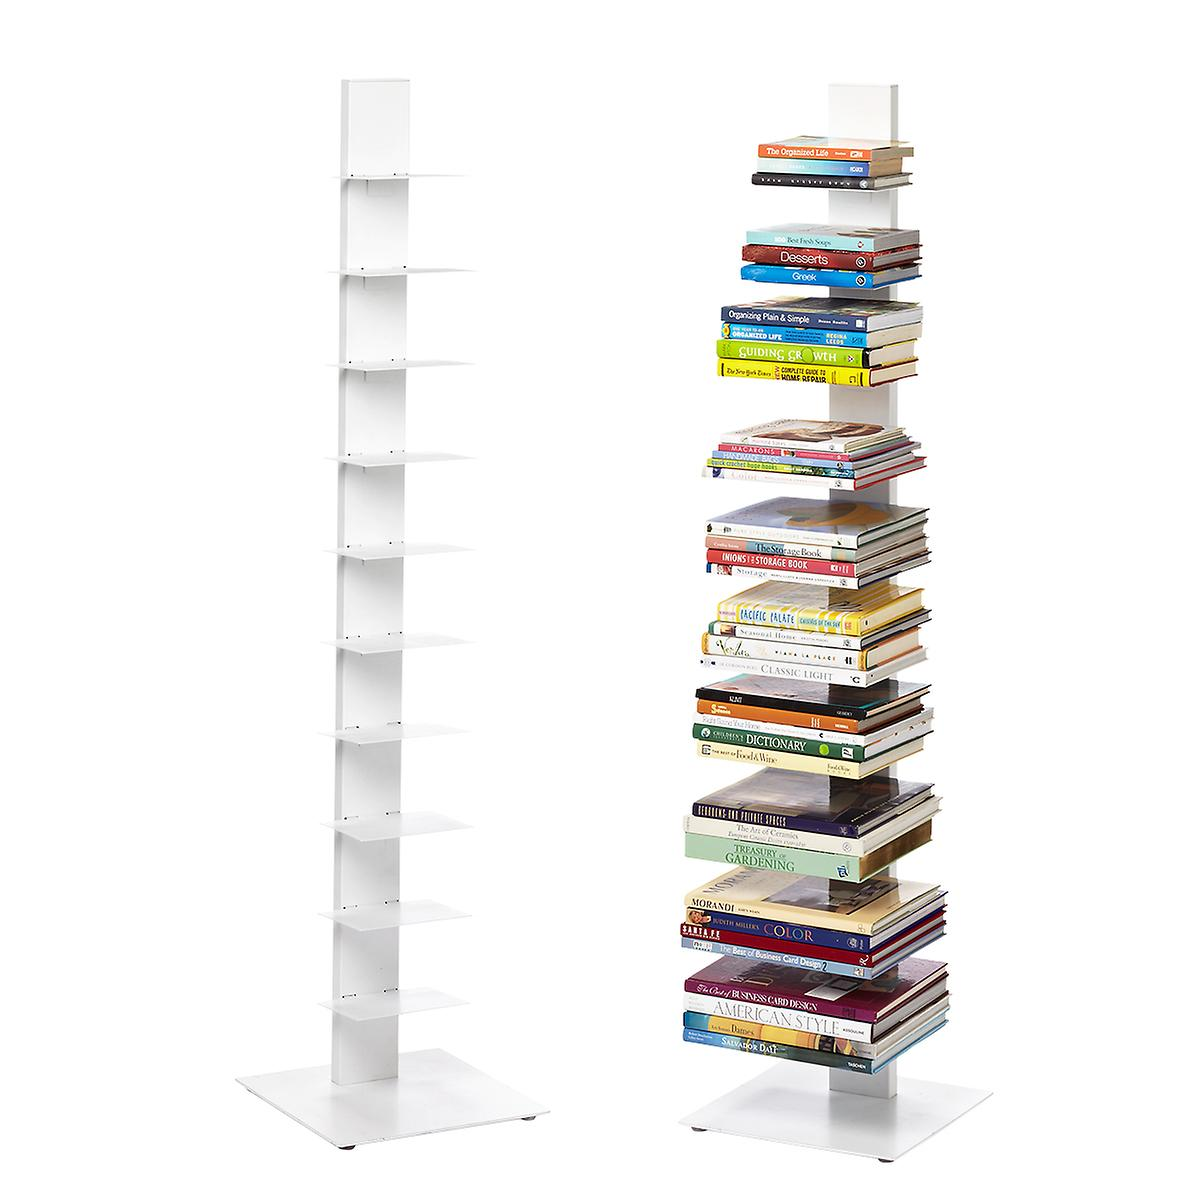 white floating bookshelf the container shelves for books sapien bookcase small spaces black wall corner shelf unit wooden tree bright solar lights mounted designs gloss home